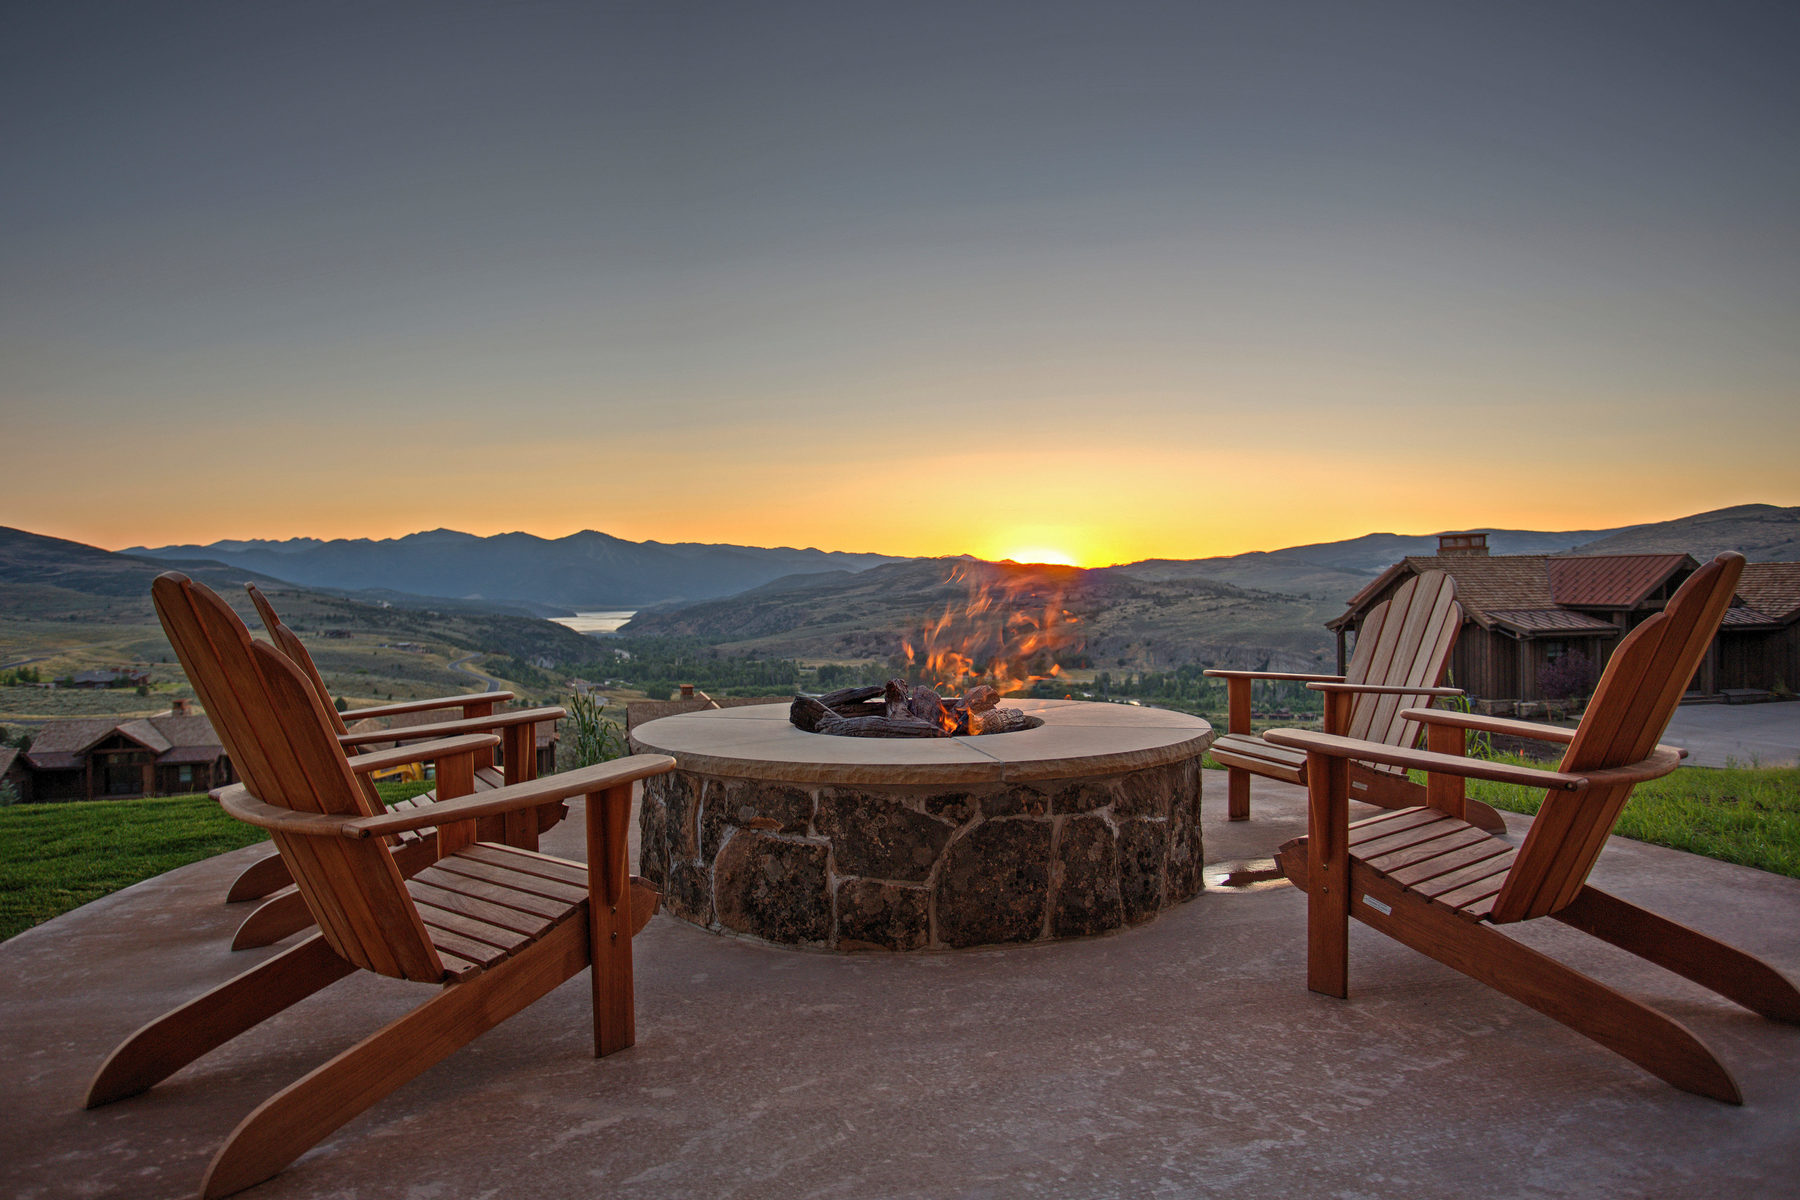 Additional photo for property listing at Juniper Cabin with Spectacular Views 7021 N Rees Jones Way #169 Heber City, Utah 84032 United States